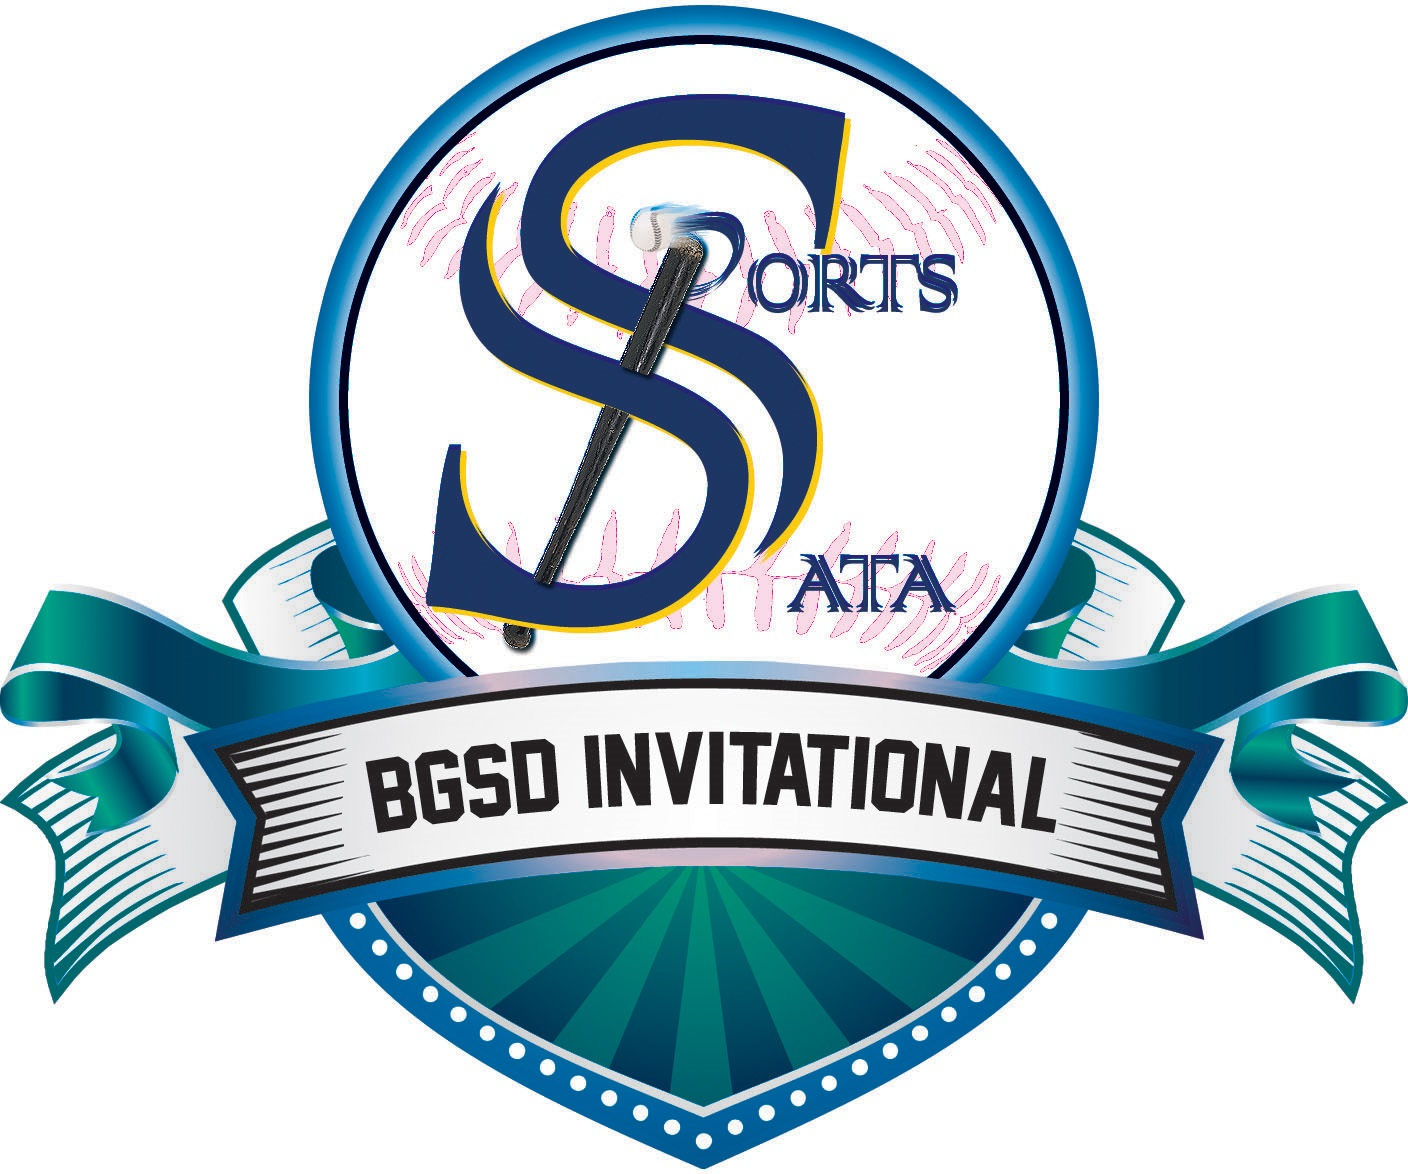 The Top 75 Men/Coed teams are invited to participate in the BGSD touraments.  Please contact BGSD if interested!